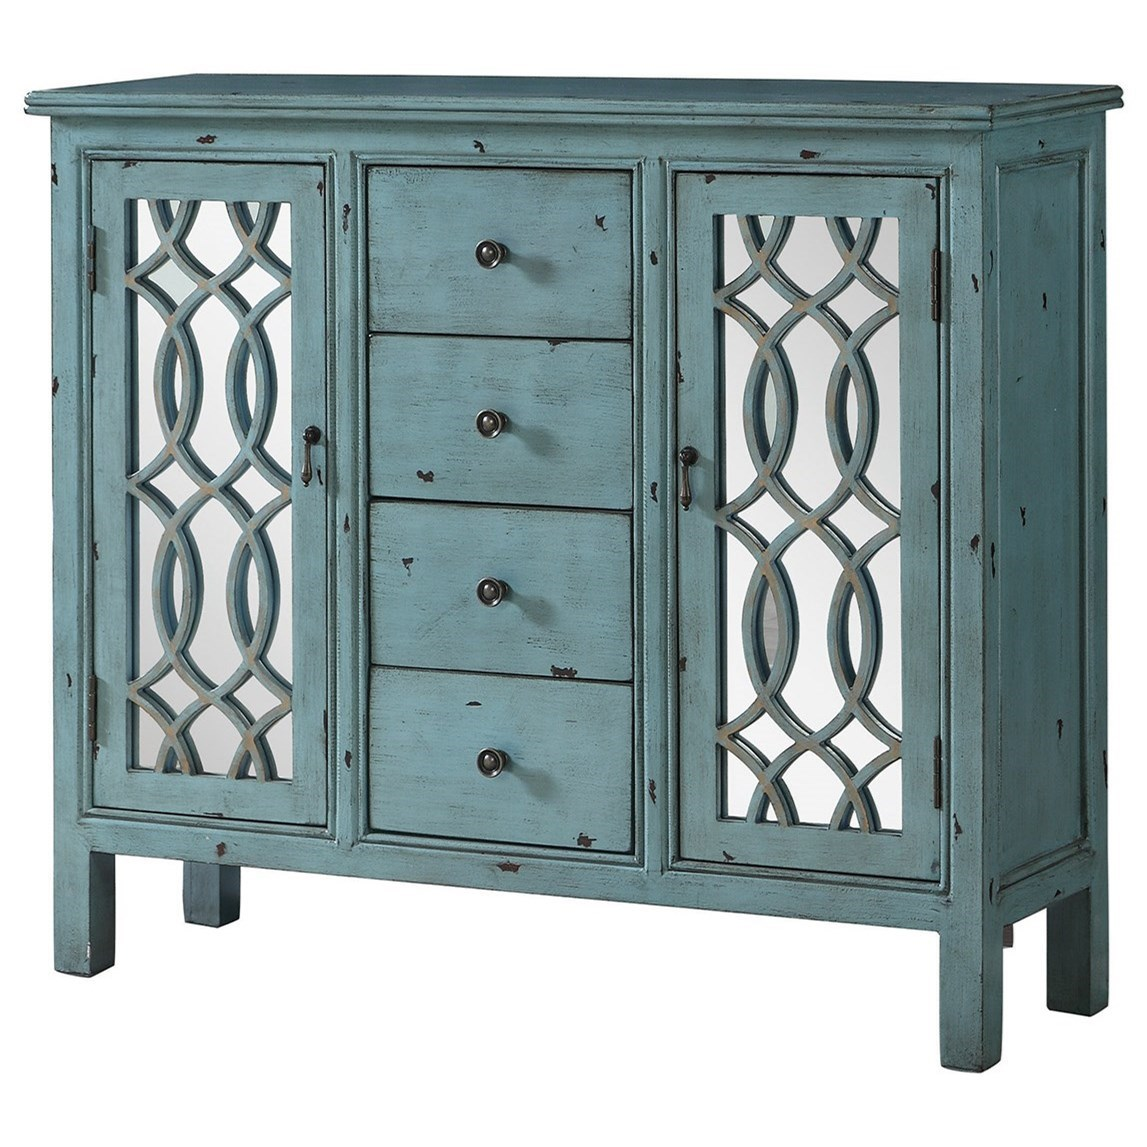 coaster accent cabinets antique blue table with inlay products color cabinet ikea vanity lights barn door designs designer legs mid century lighting living room shelves willow